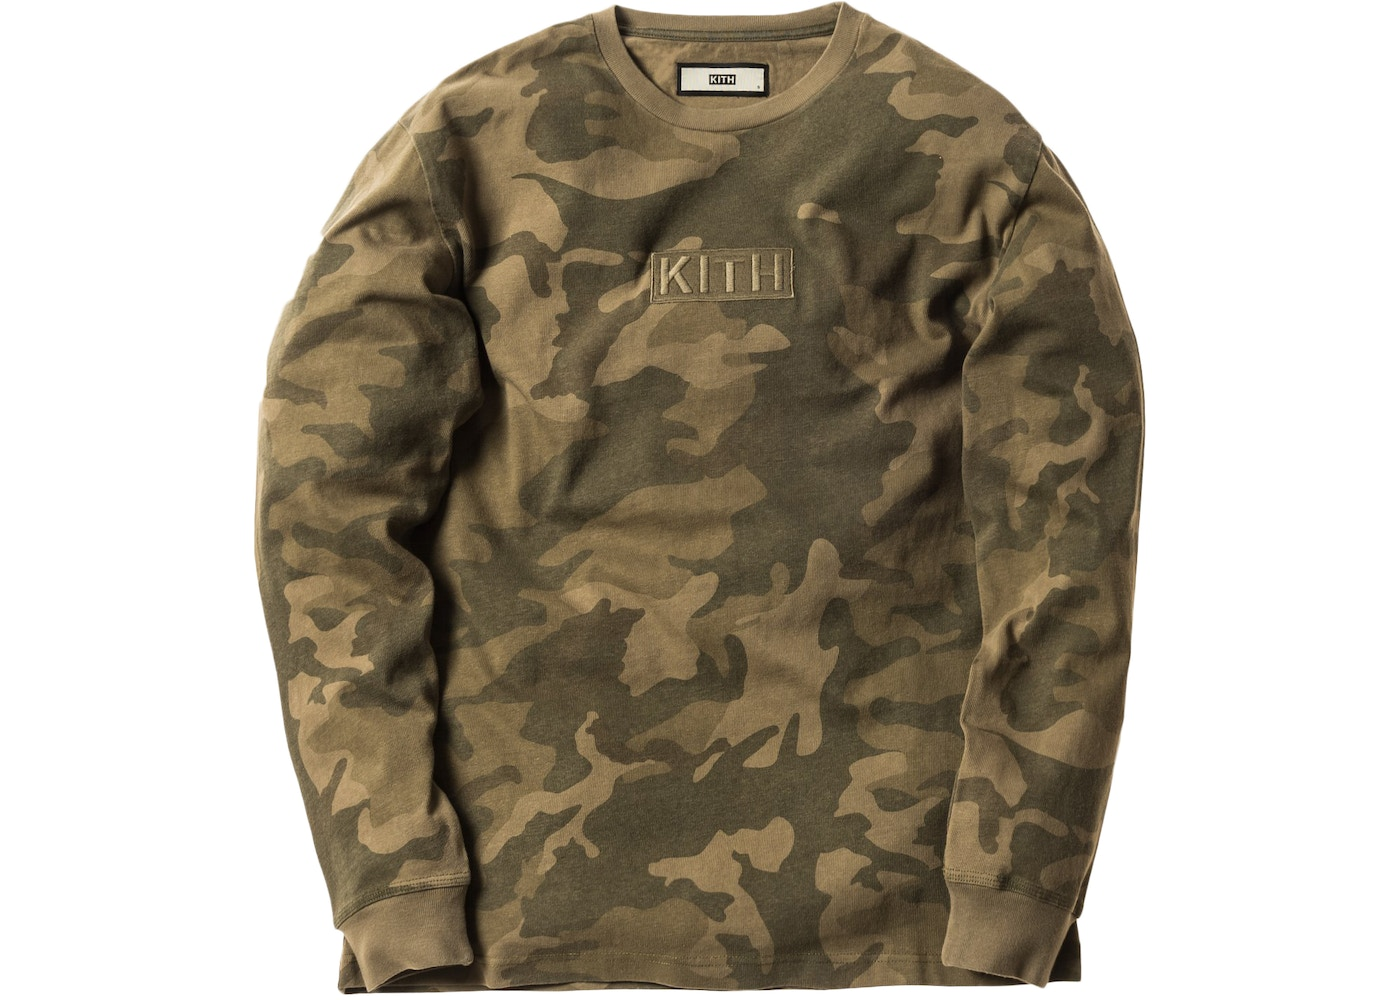 83306ecf Streetwear - Kith T-Shirts - New Lowest Asks